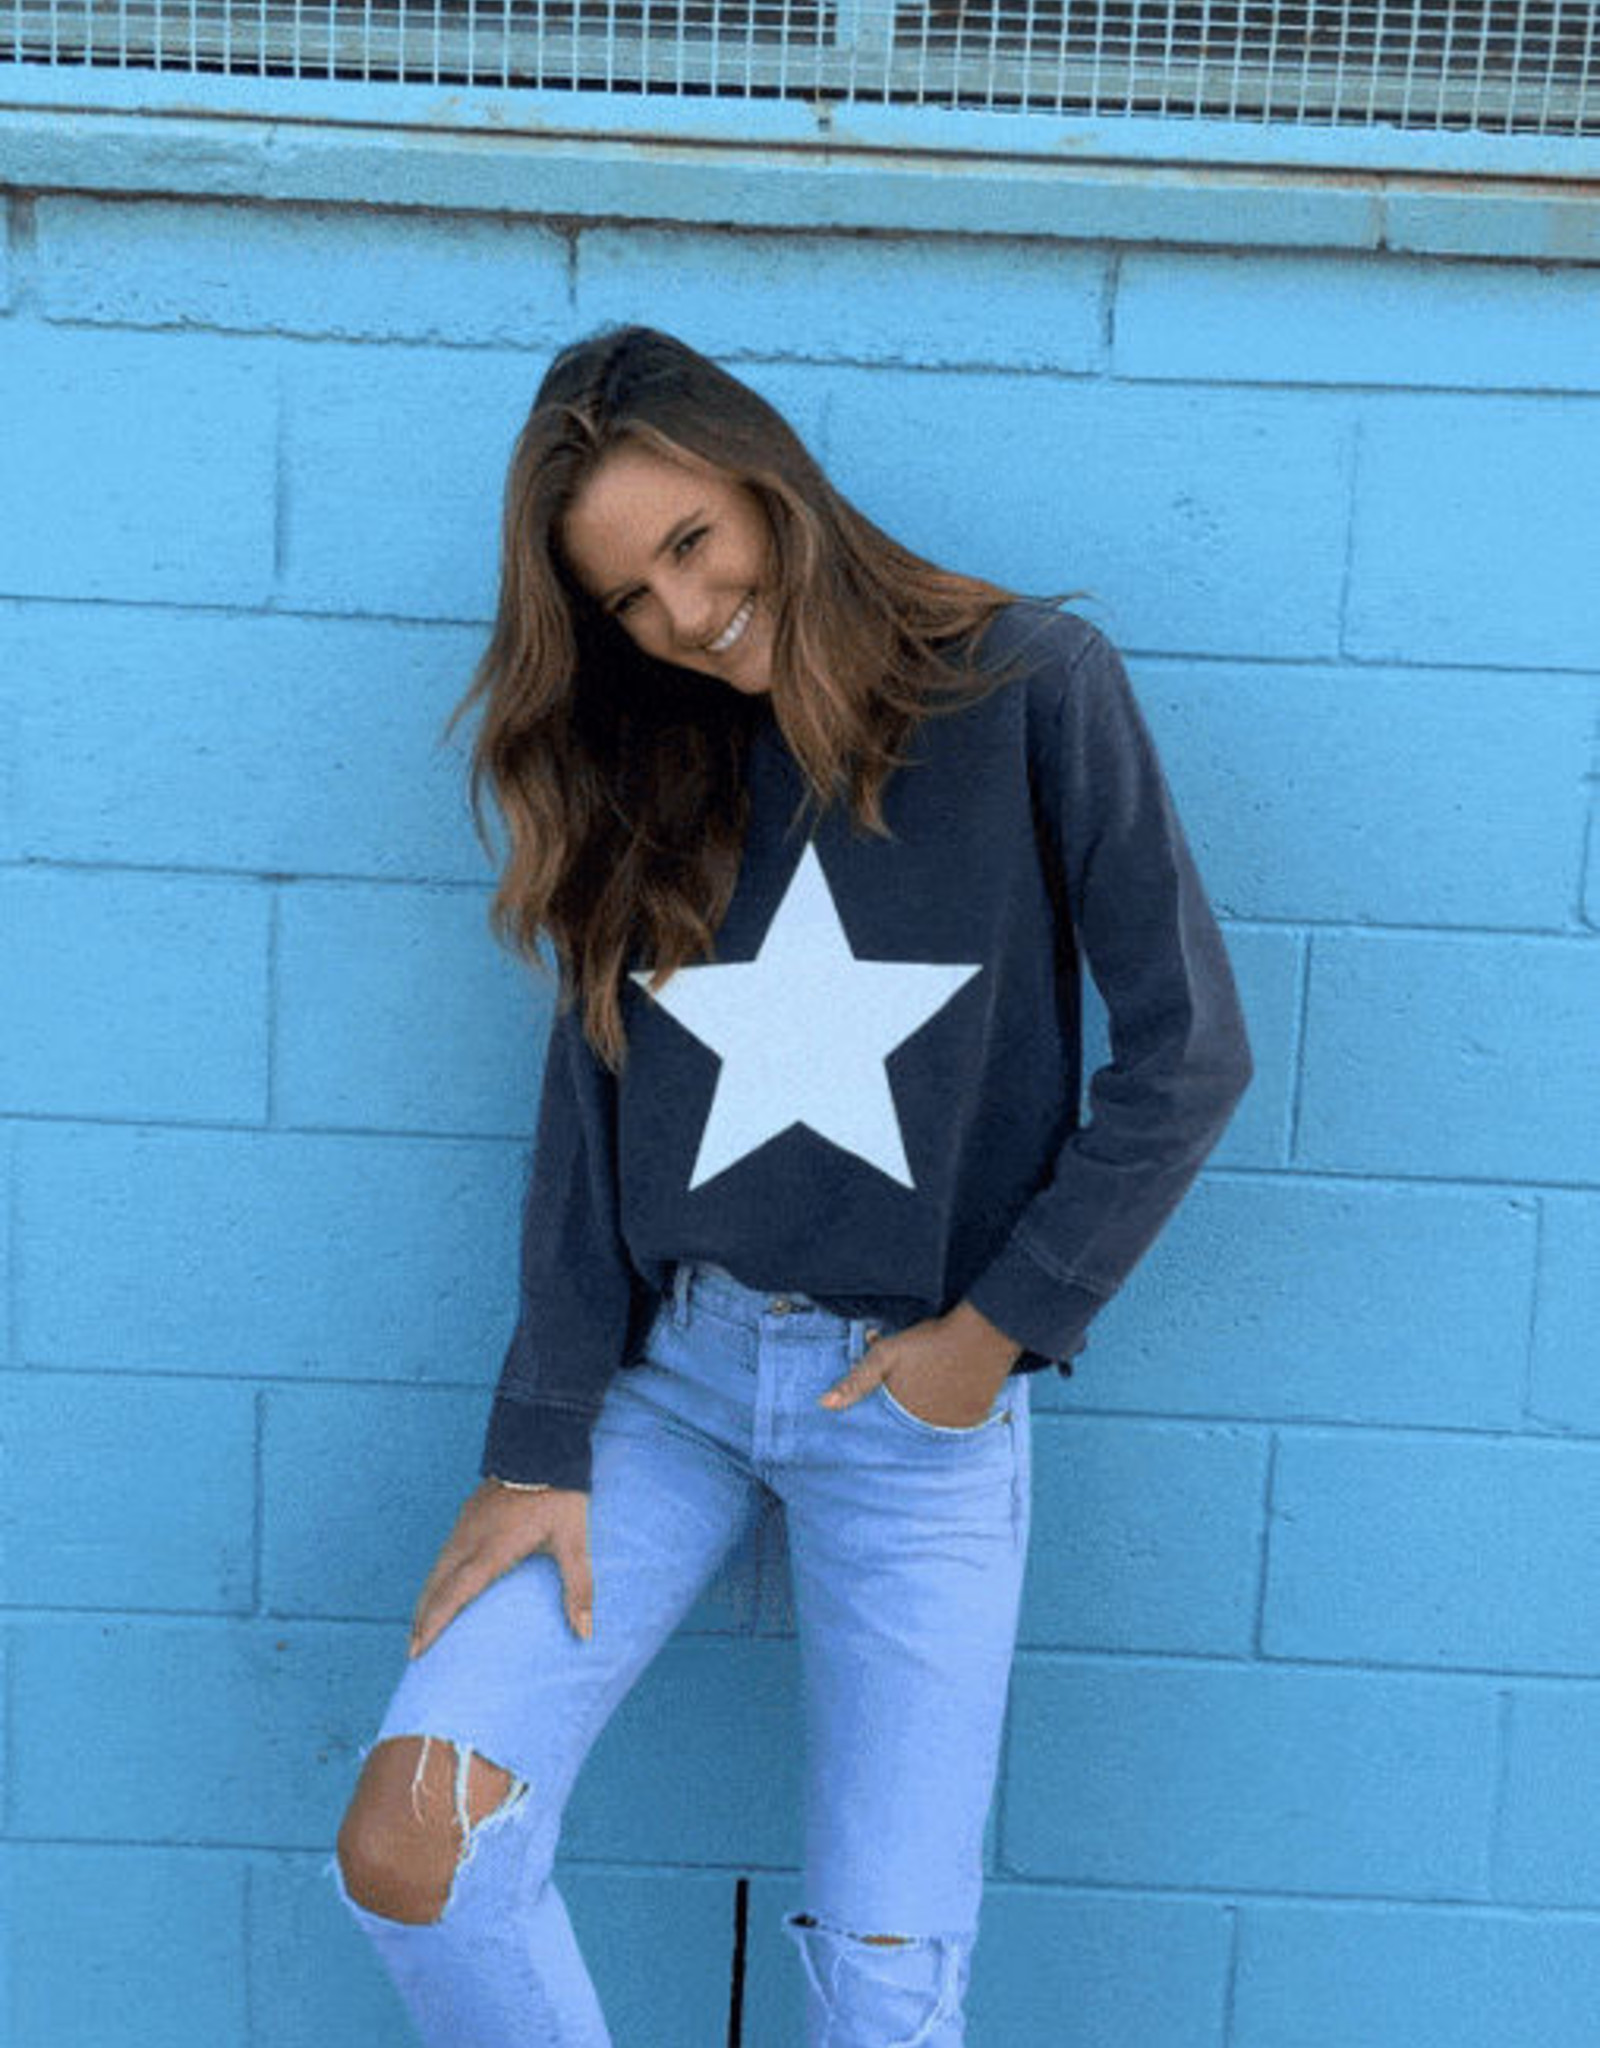 SOPHIE MORAN ZIP STAR SWEATSHIRT SOFT BLACK & WHITE